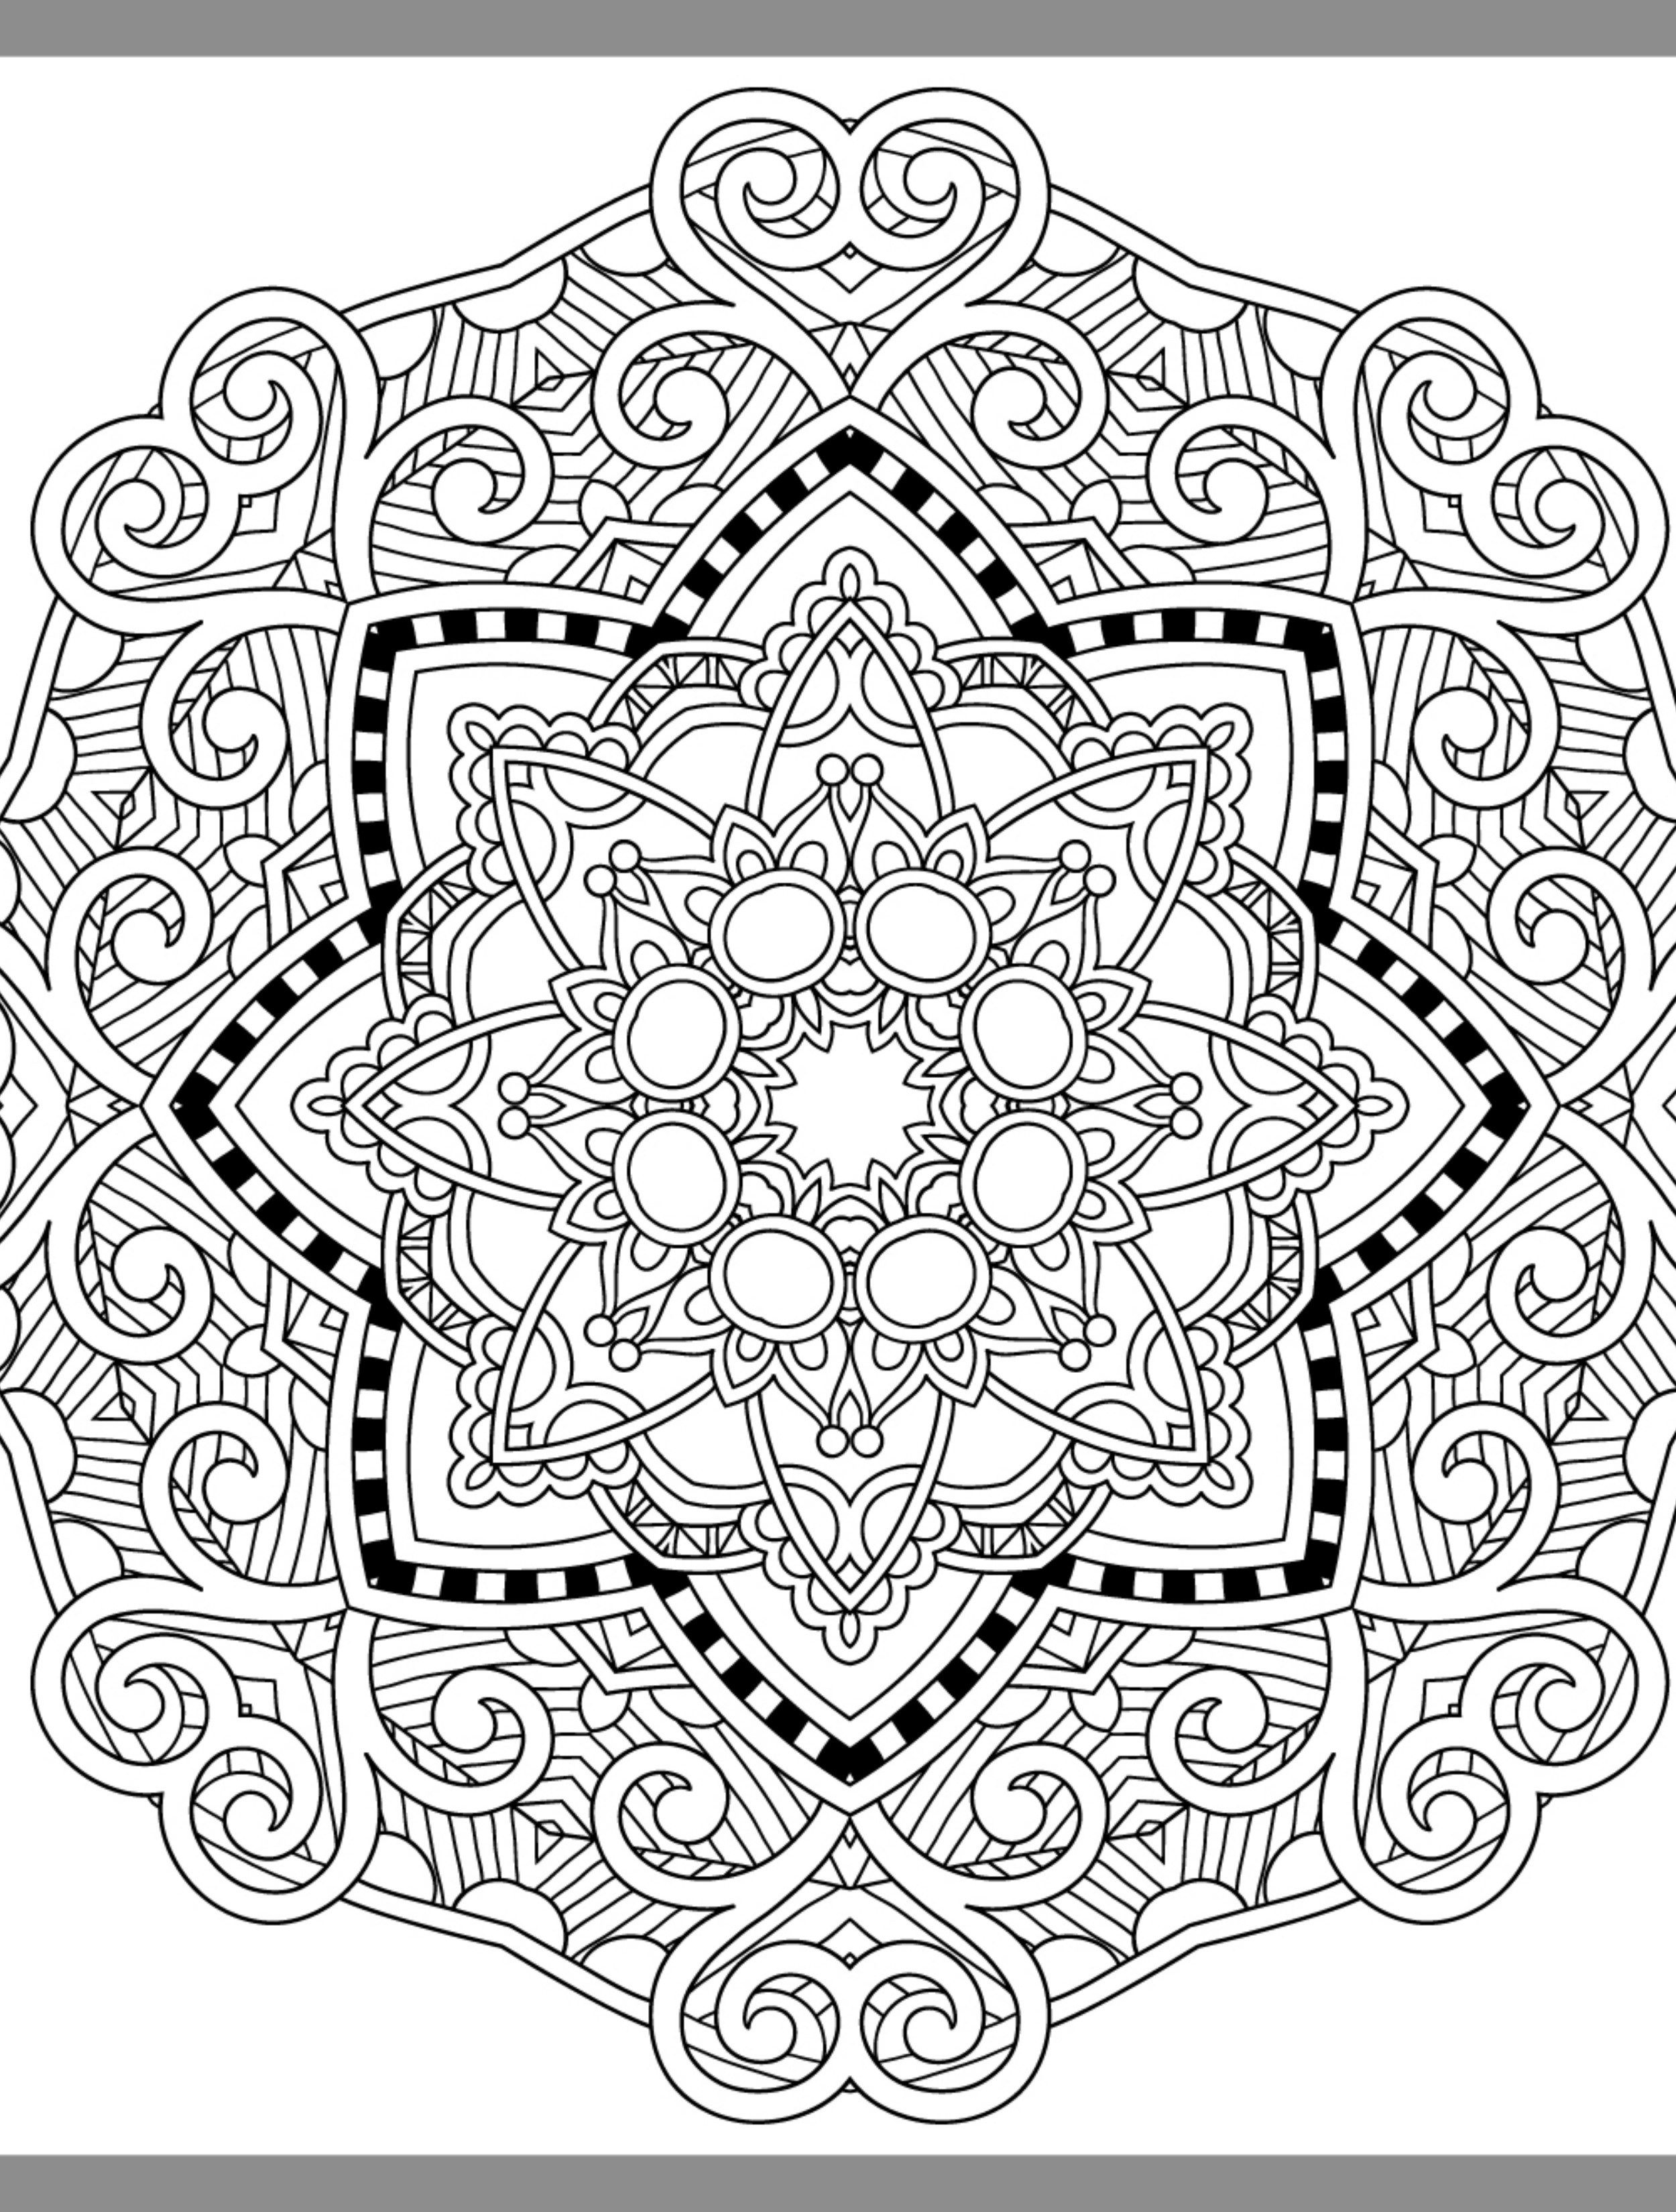 24 More Free Printable Adult Coloring Pages | Printable ... | free printable mandala coloring pages for adults